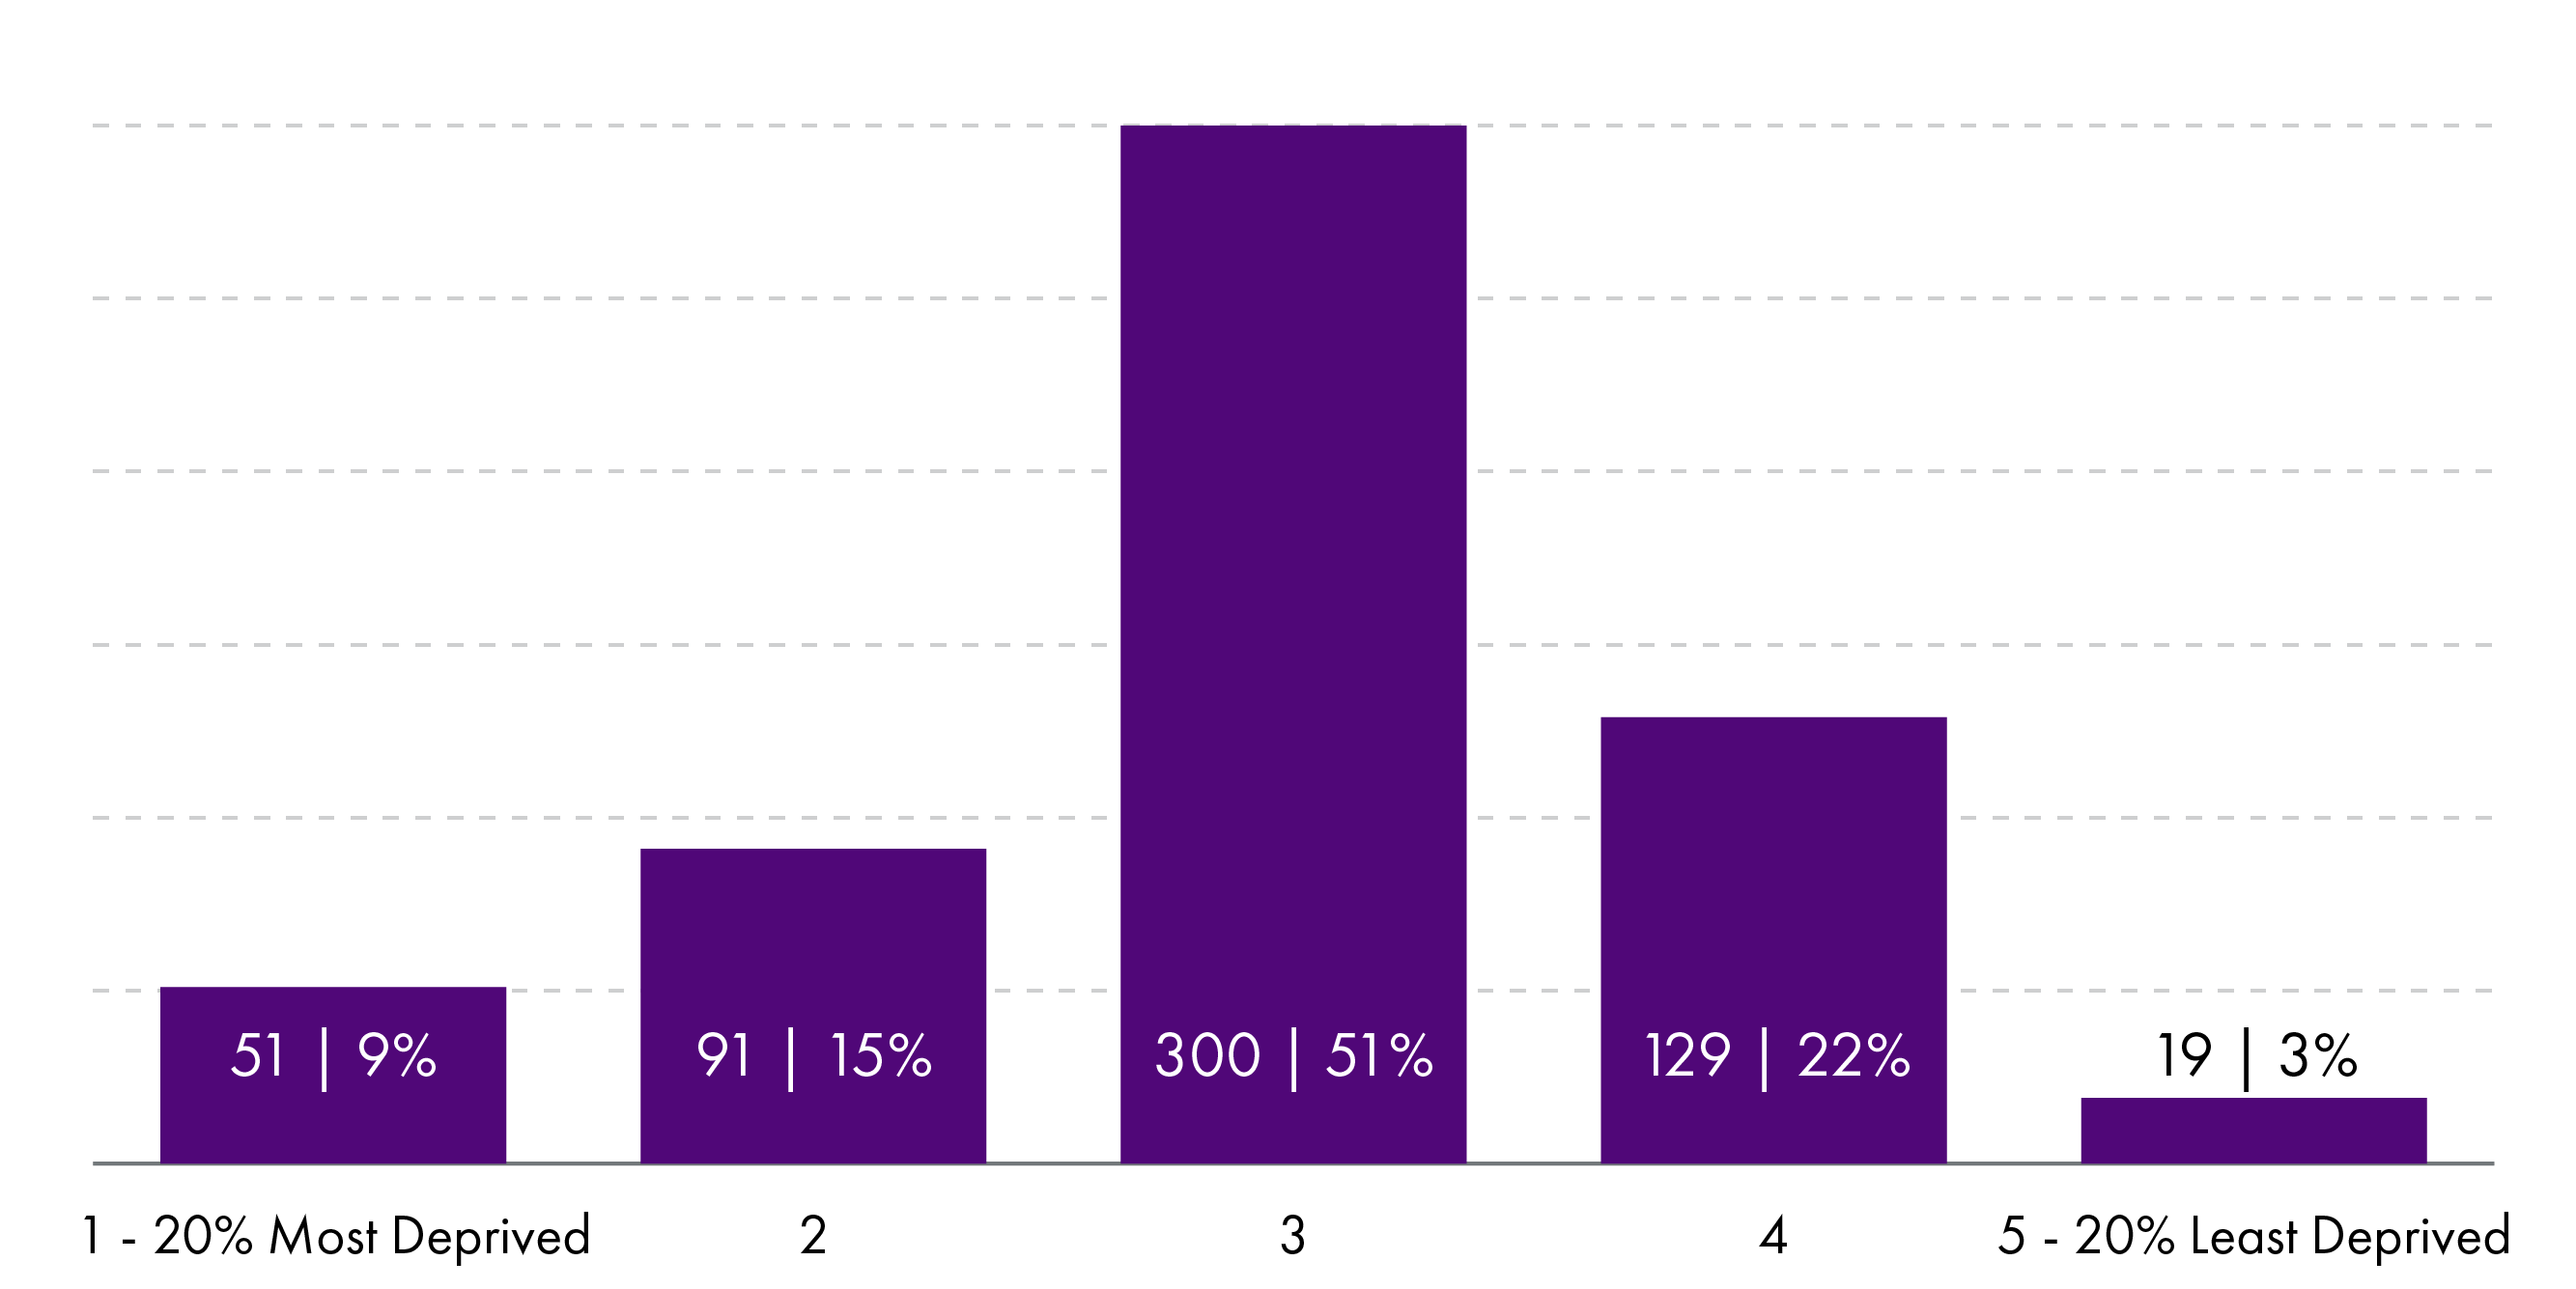 A breakdown of assets in community control by SIMD quintile in 2019. The most deprived 20% of communities own 9% of all community assets in Scotland, the second most deprived 15%, the middle quintile 51%, the second least deprived 22% and the least deprived 3%.